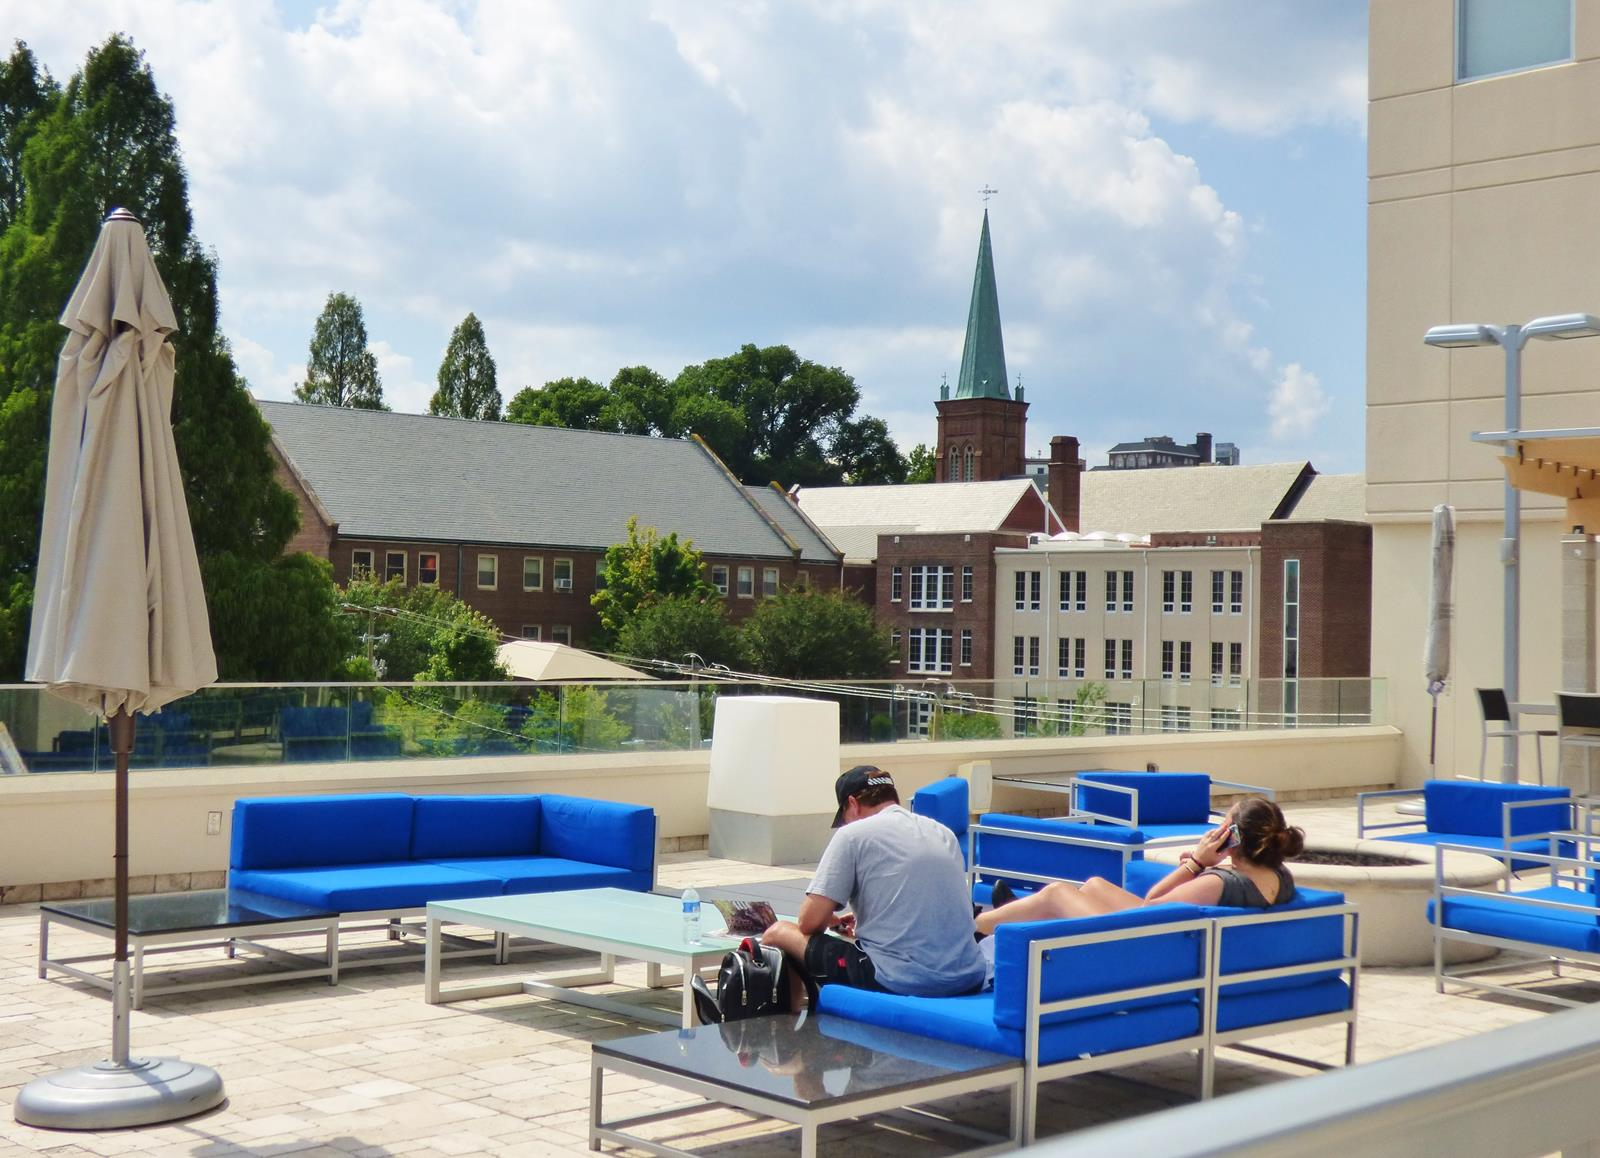 10 tips for a perfect weekend in asheville nc outdoorlux - Extraordinary and relaxing rooftop pools ideas ...